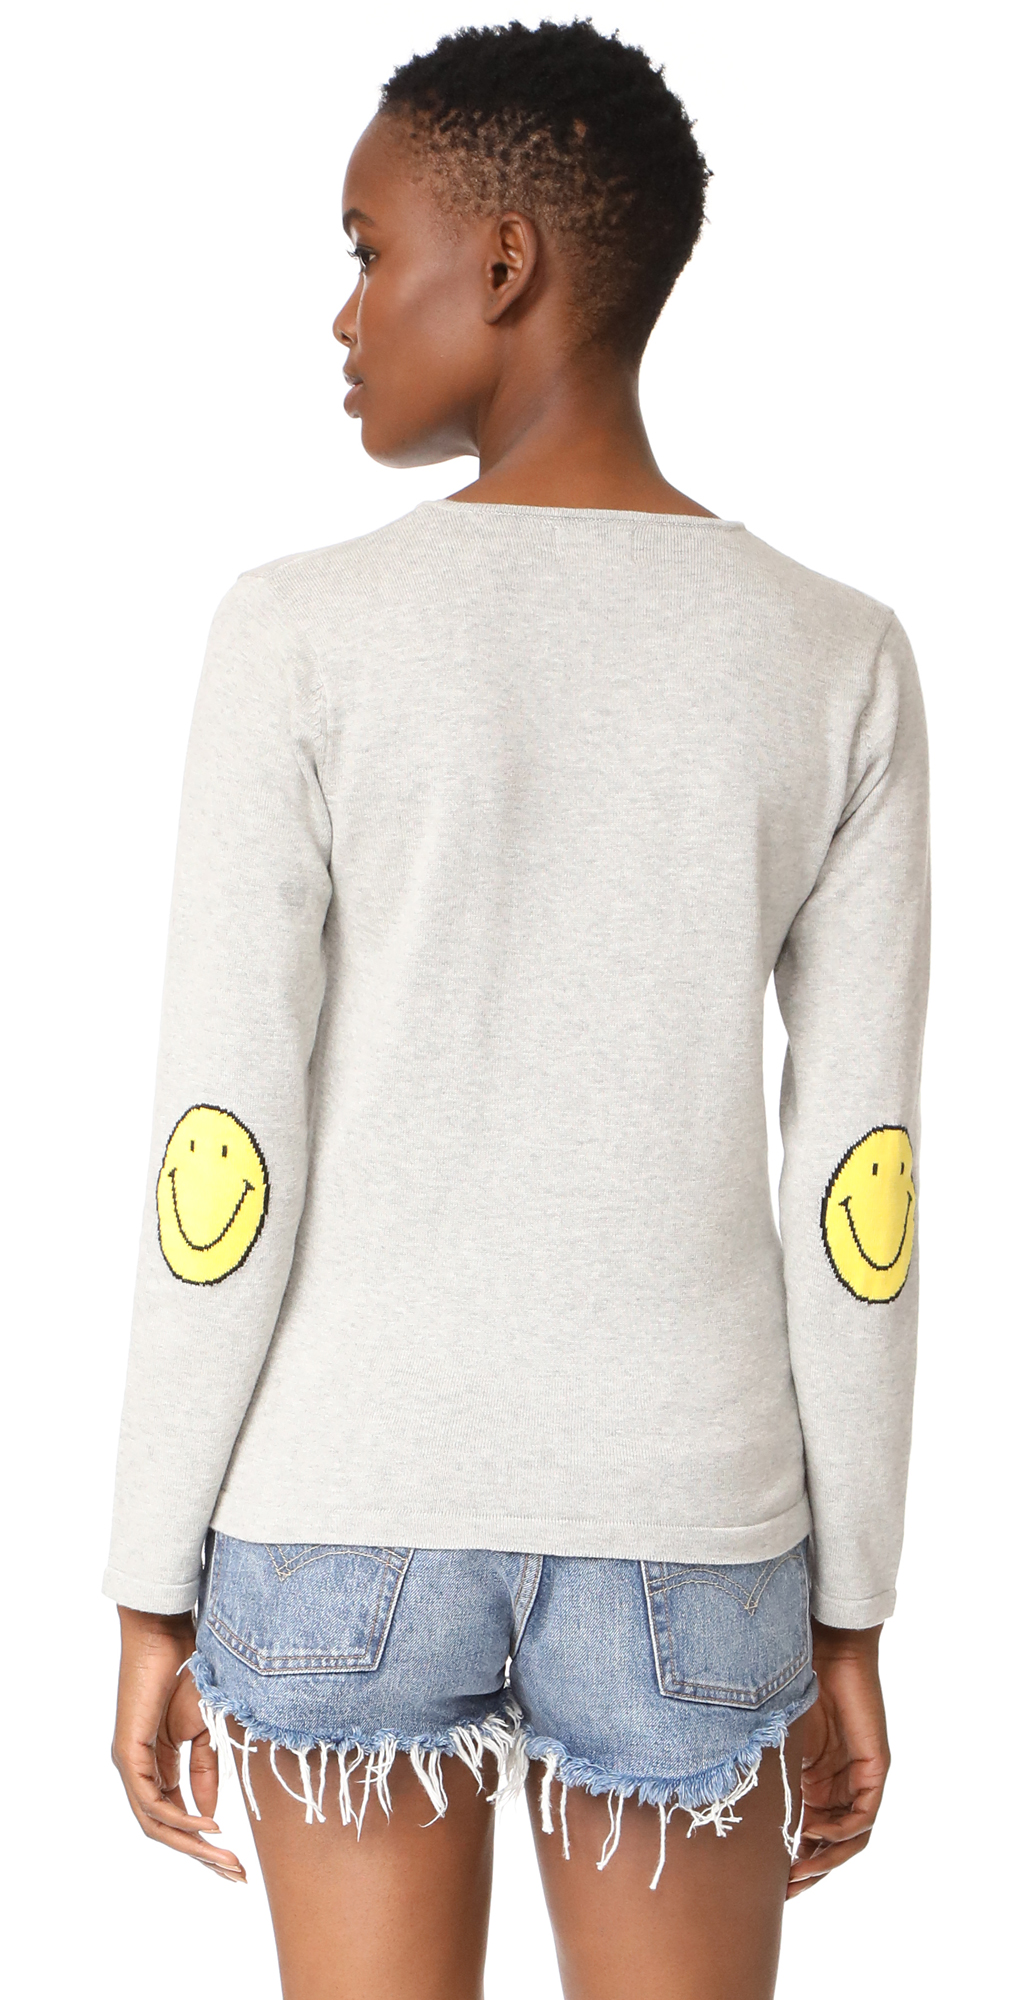 Smile Sweater ONE by J4K